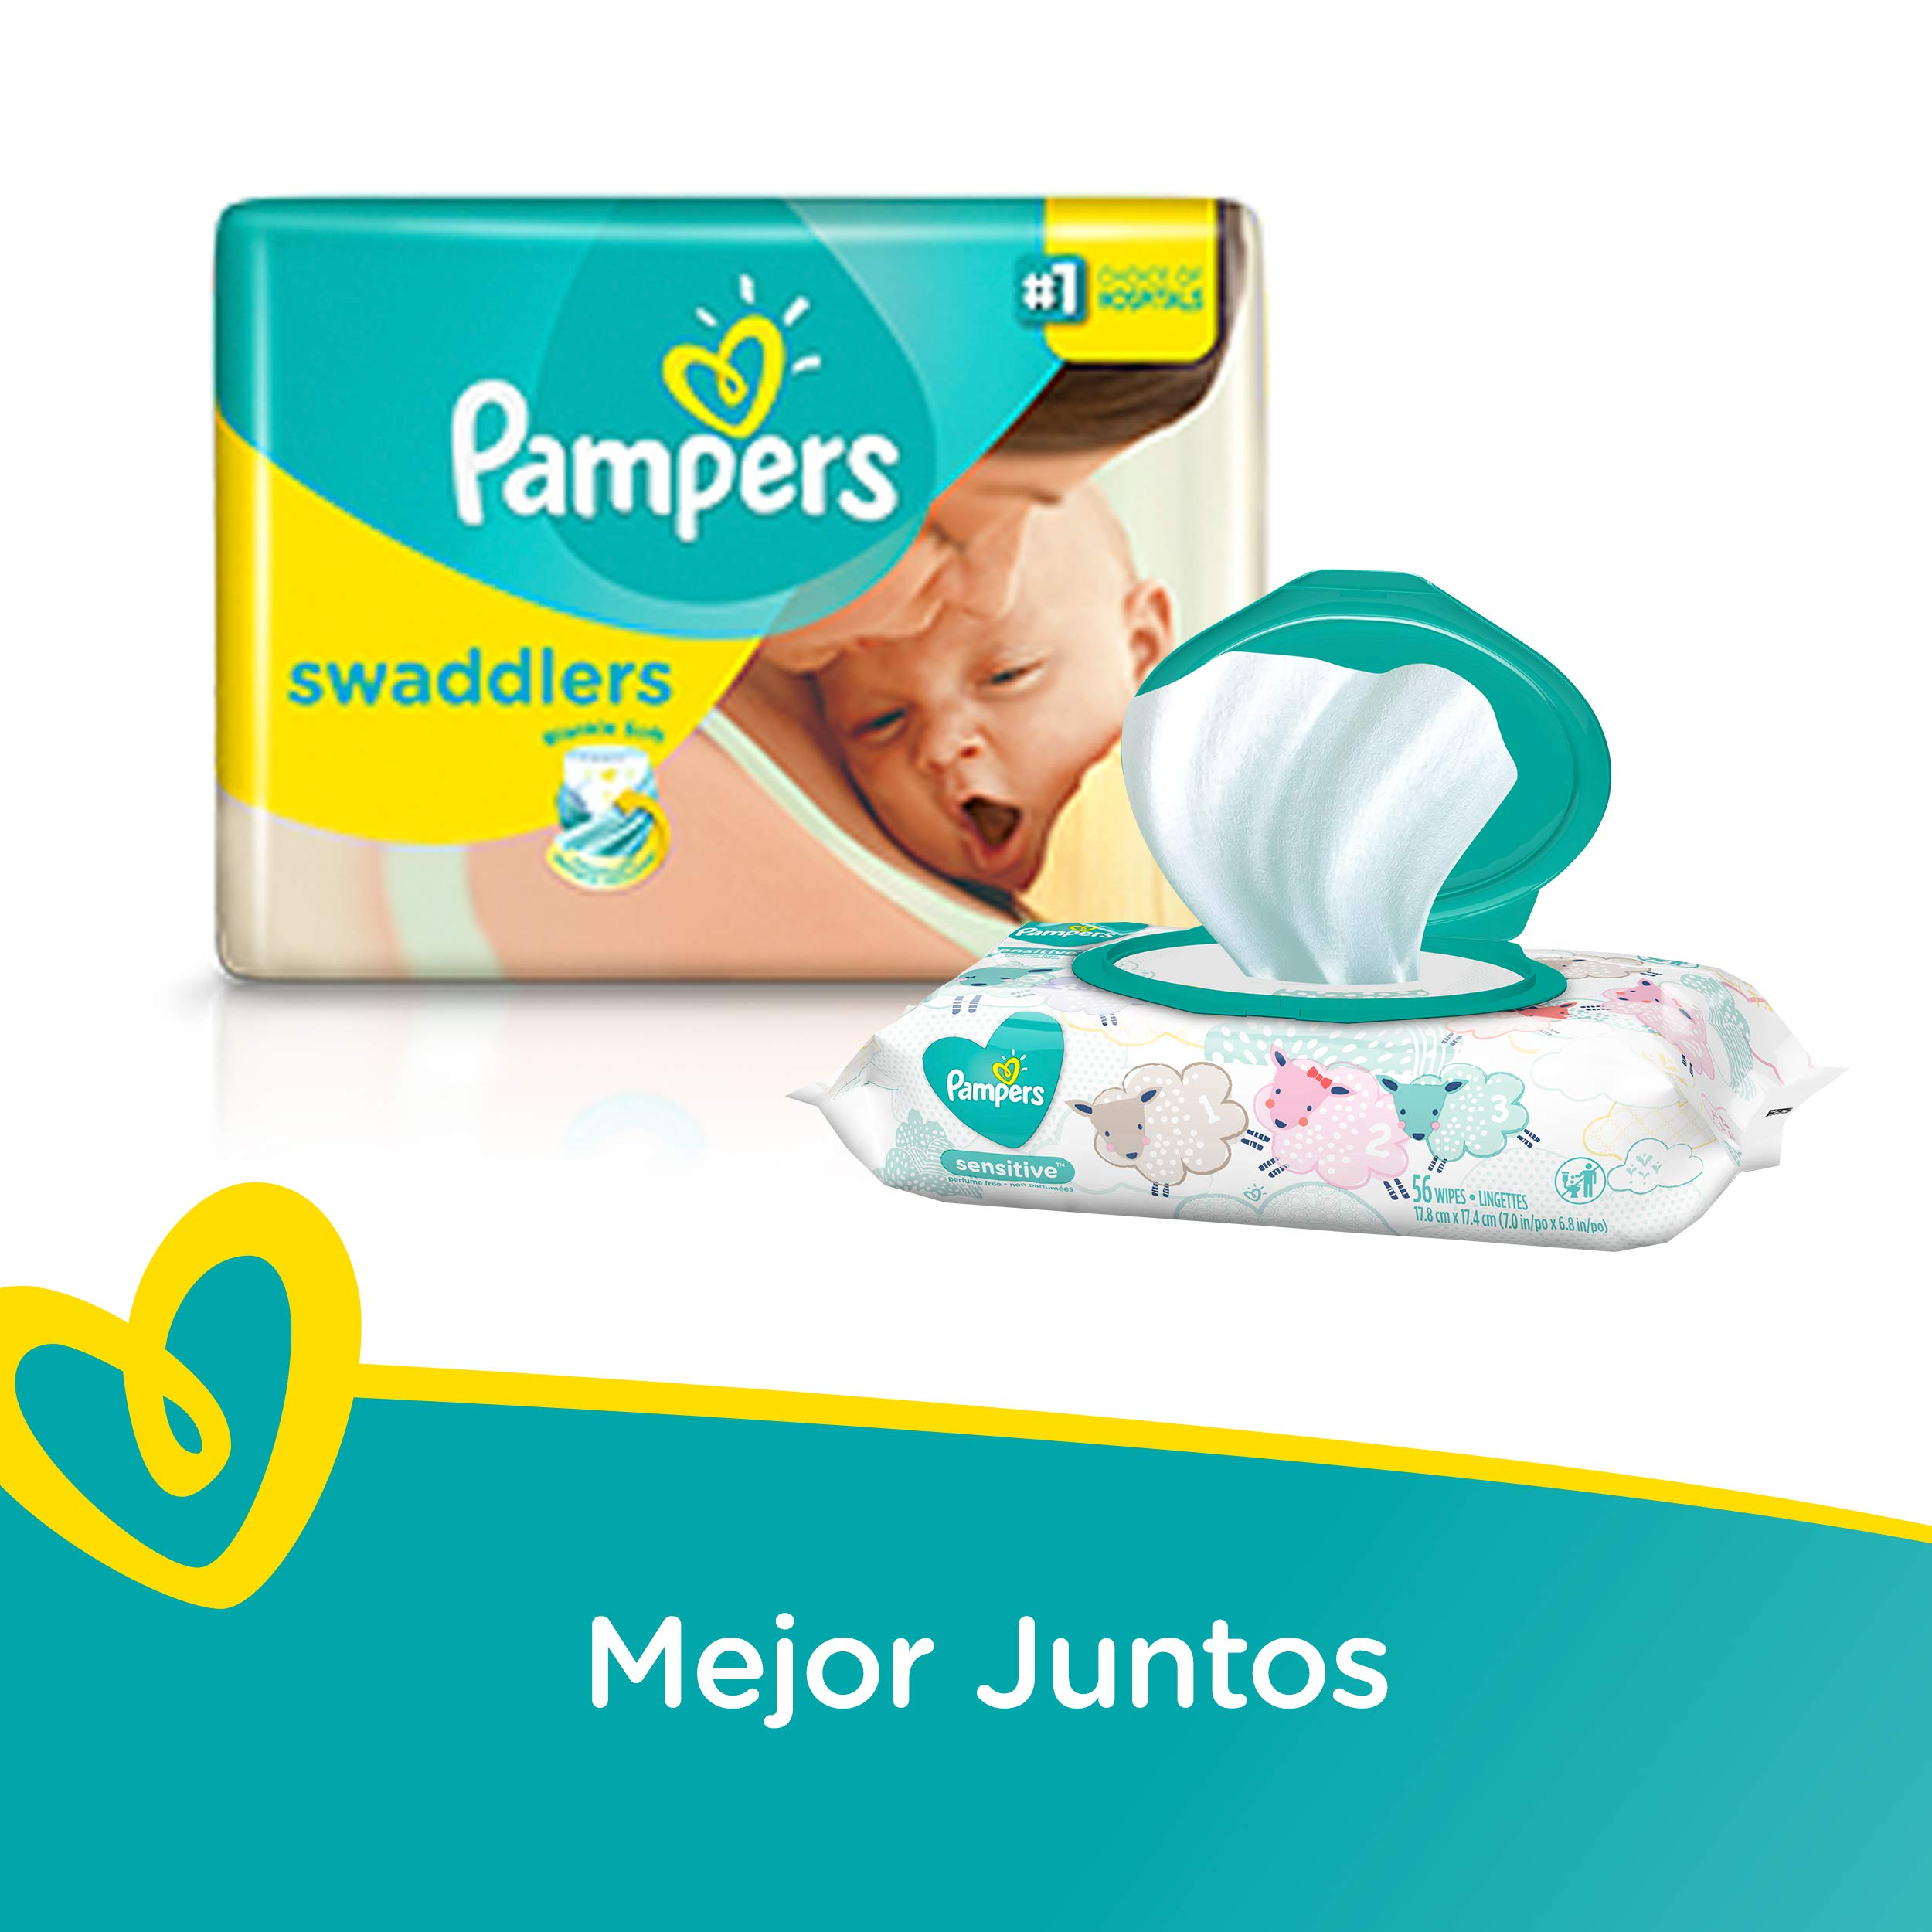 Pampers Swaddlers Diapers Size N 20 Count Pack of 2 (Total of 40 Pampers) by Pampers